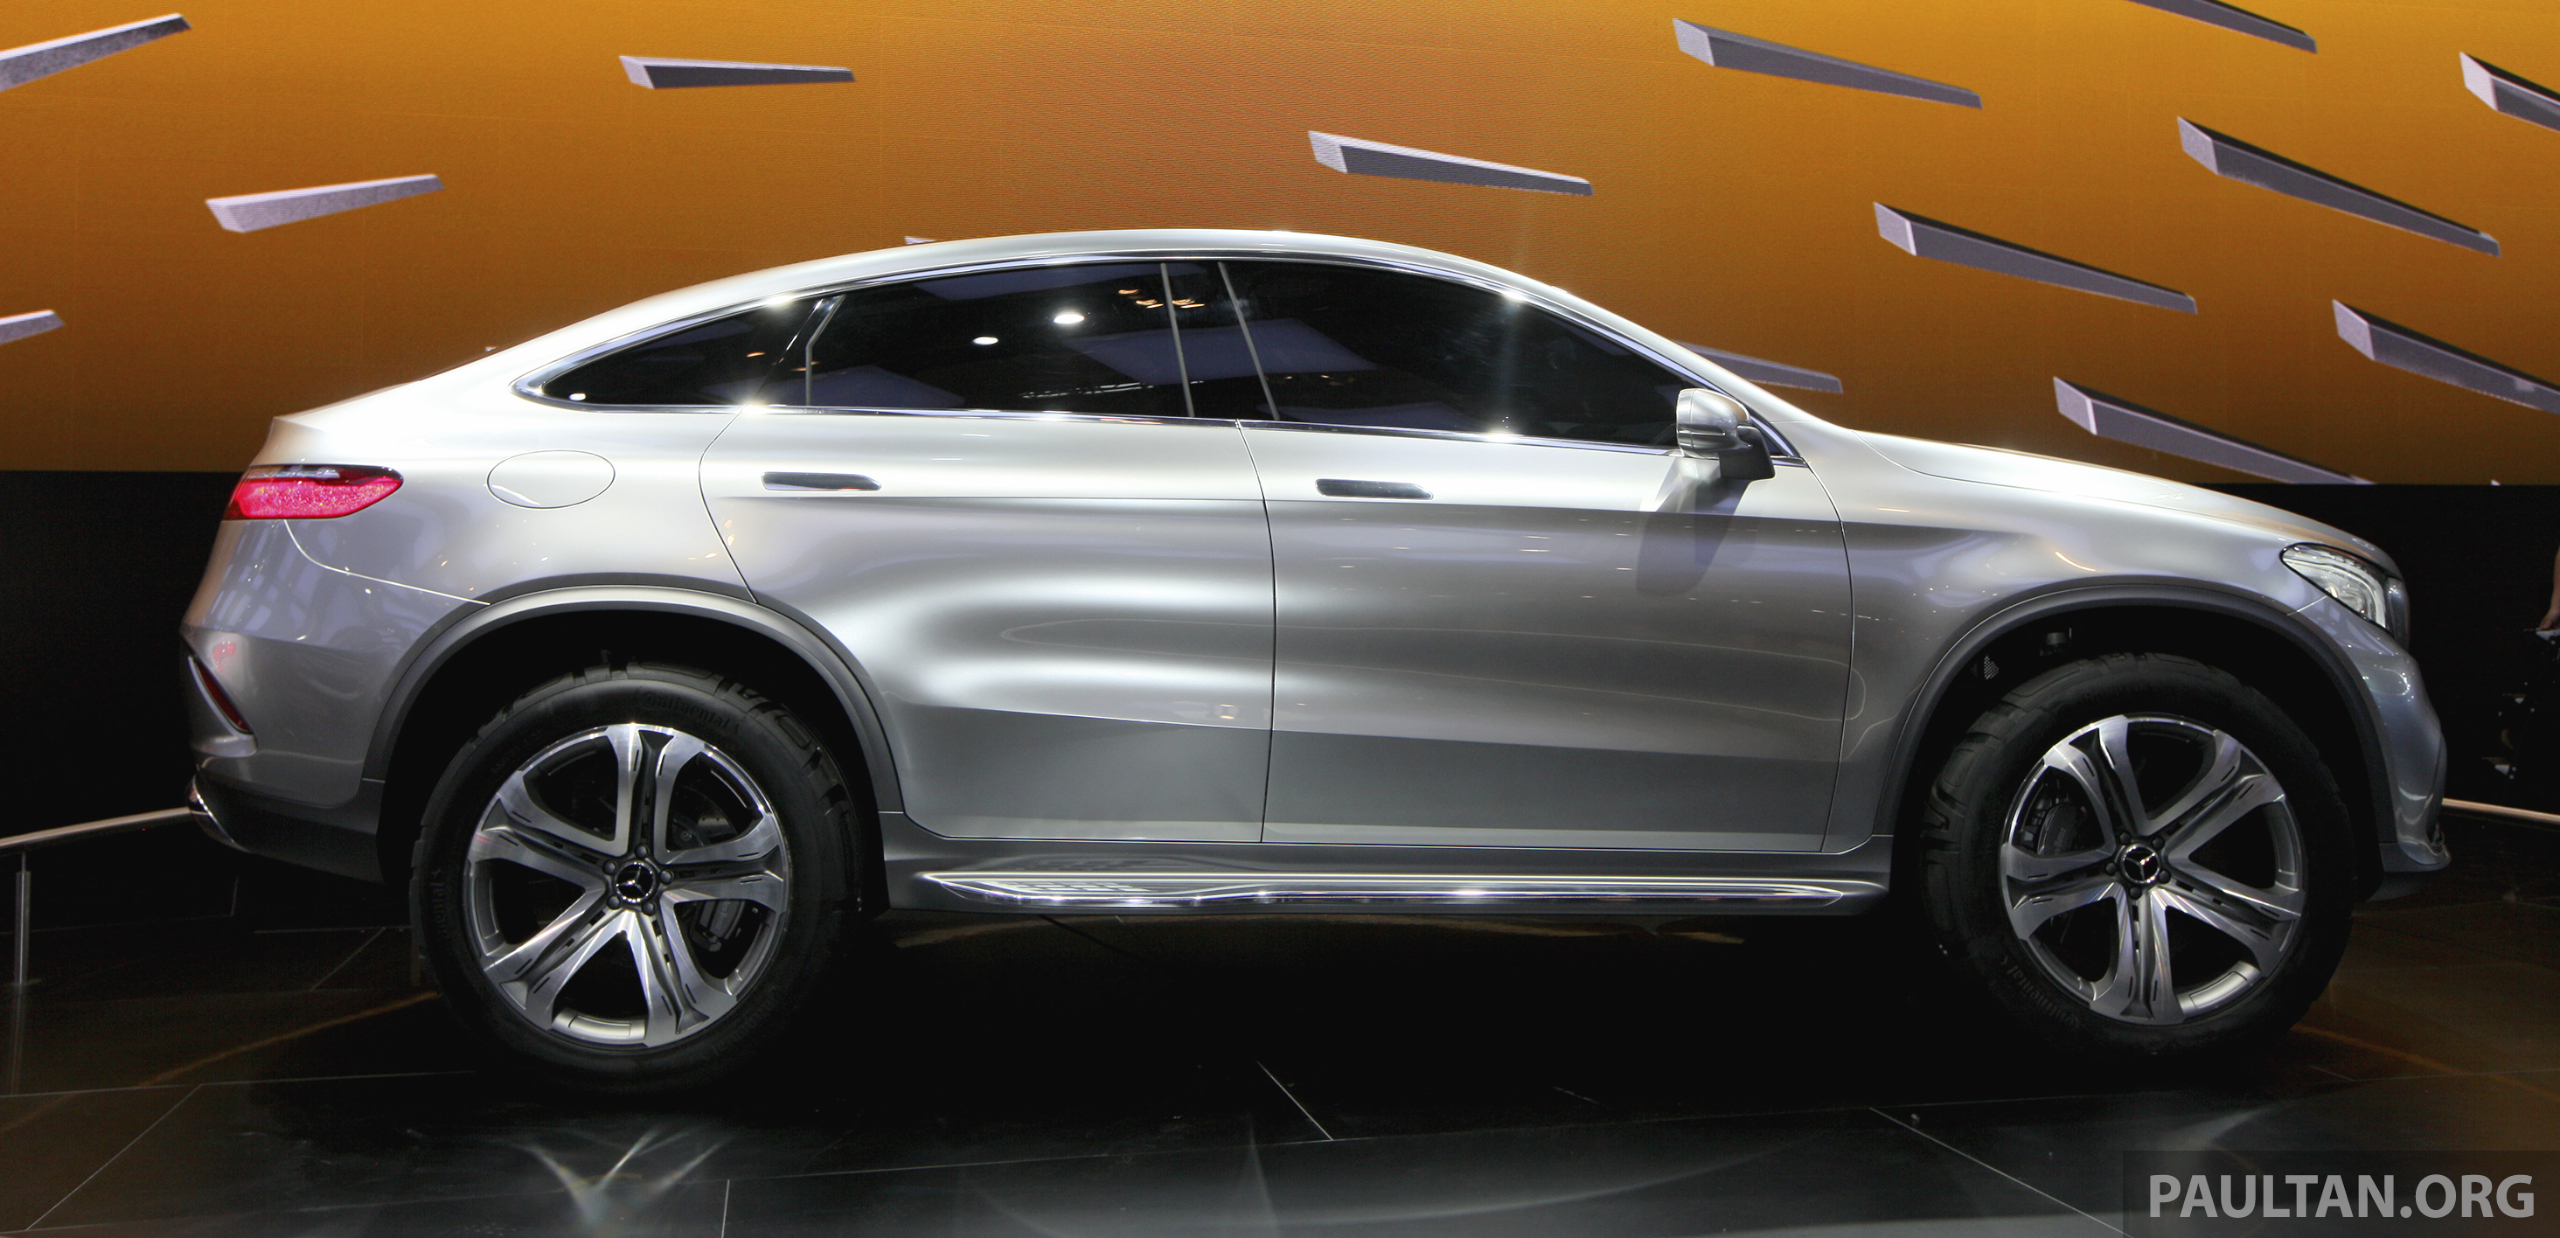 Mercedes benz coupe suv concept previews x6 rival image 242816 for Mercedes benz x6